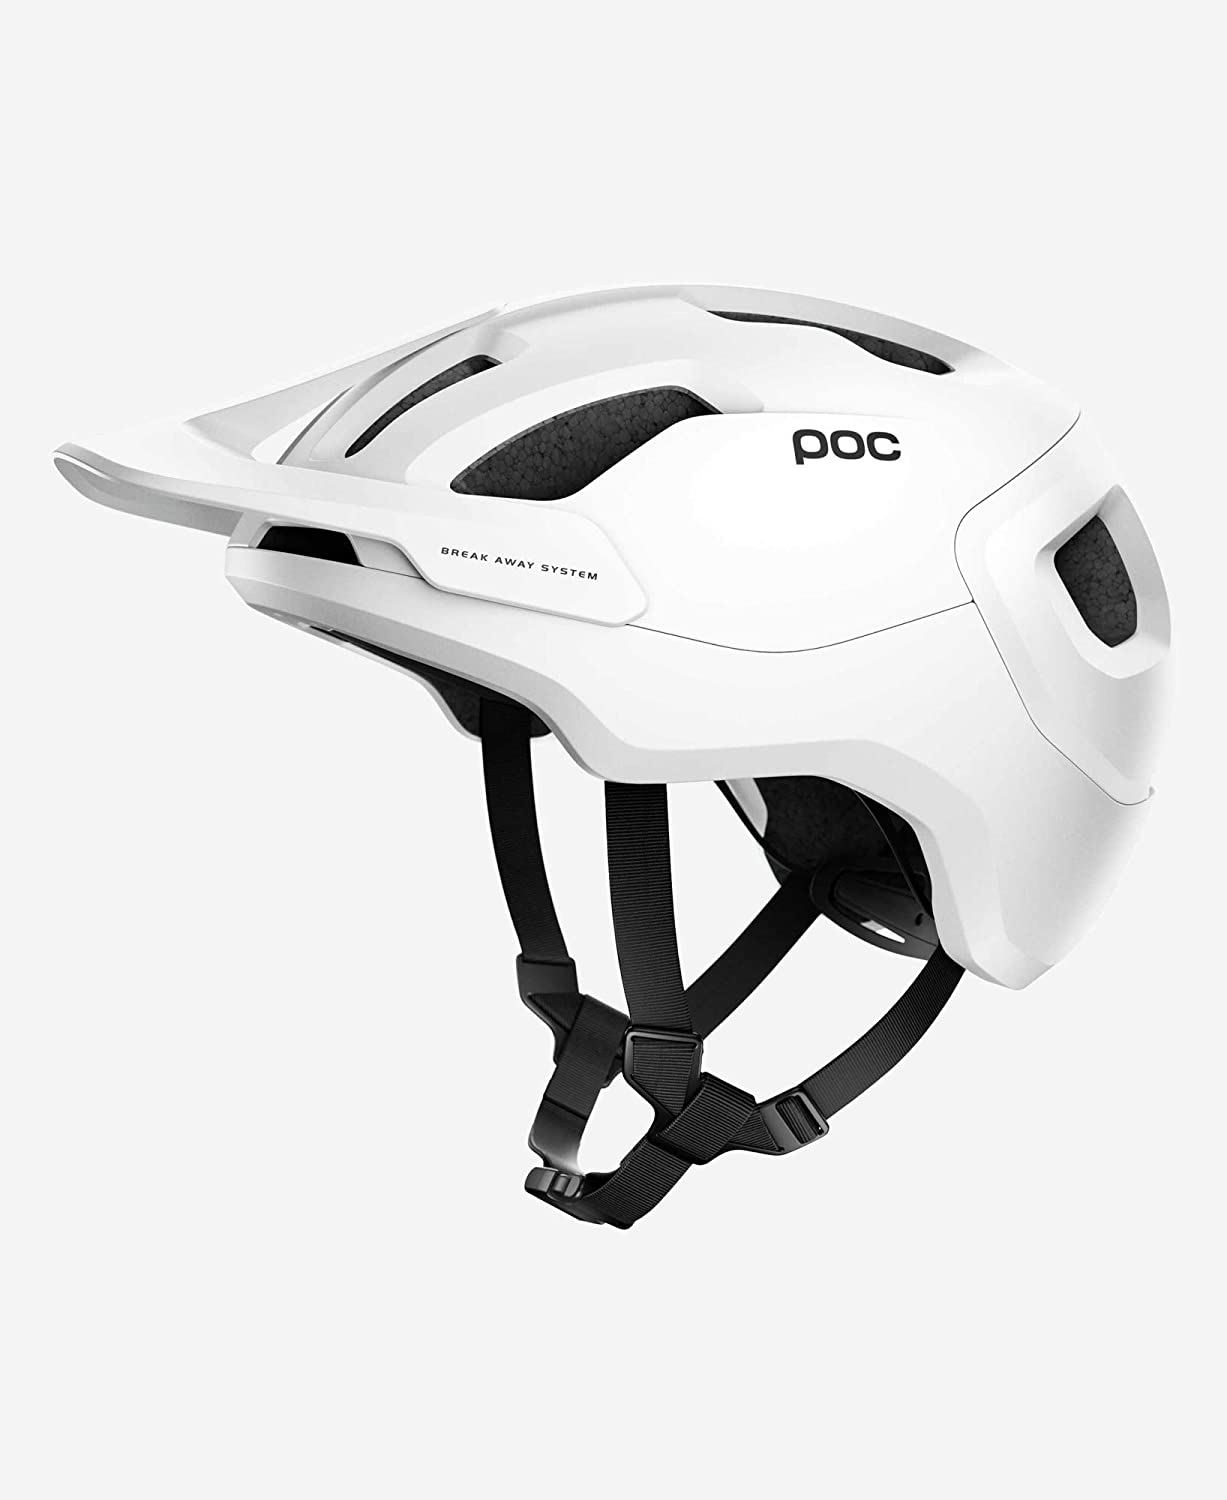 POC Axion Spin Mountain Bike Helmet for Trail and Enduro